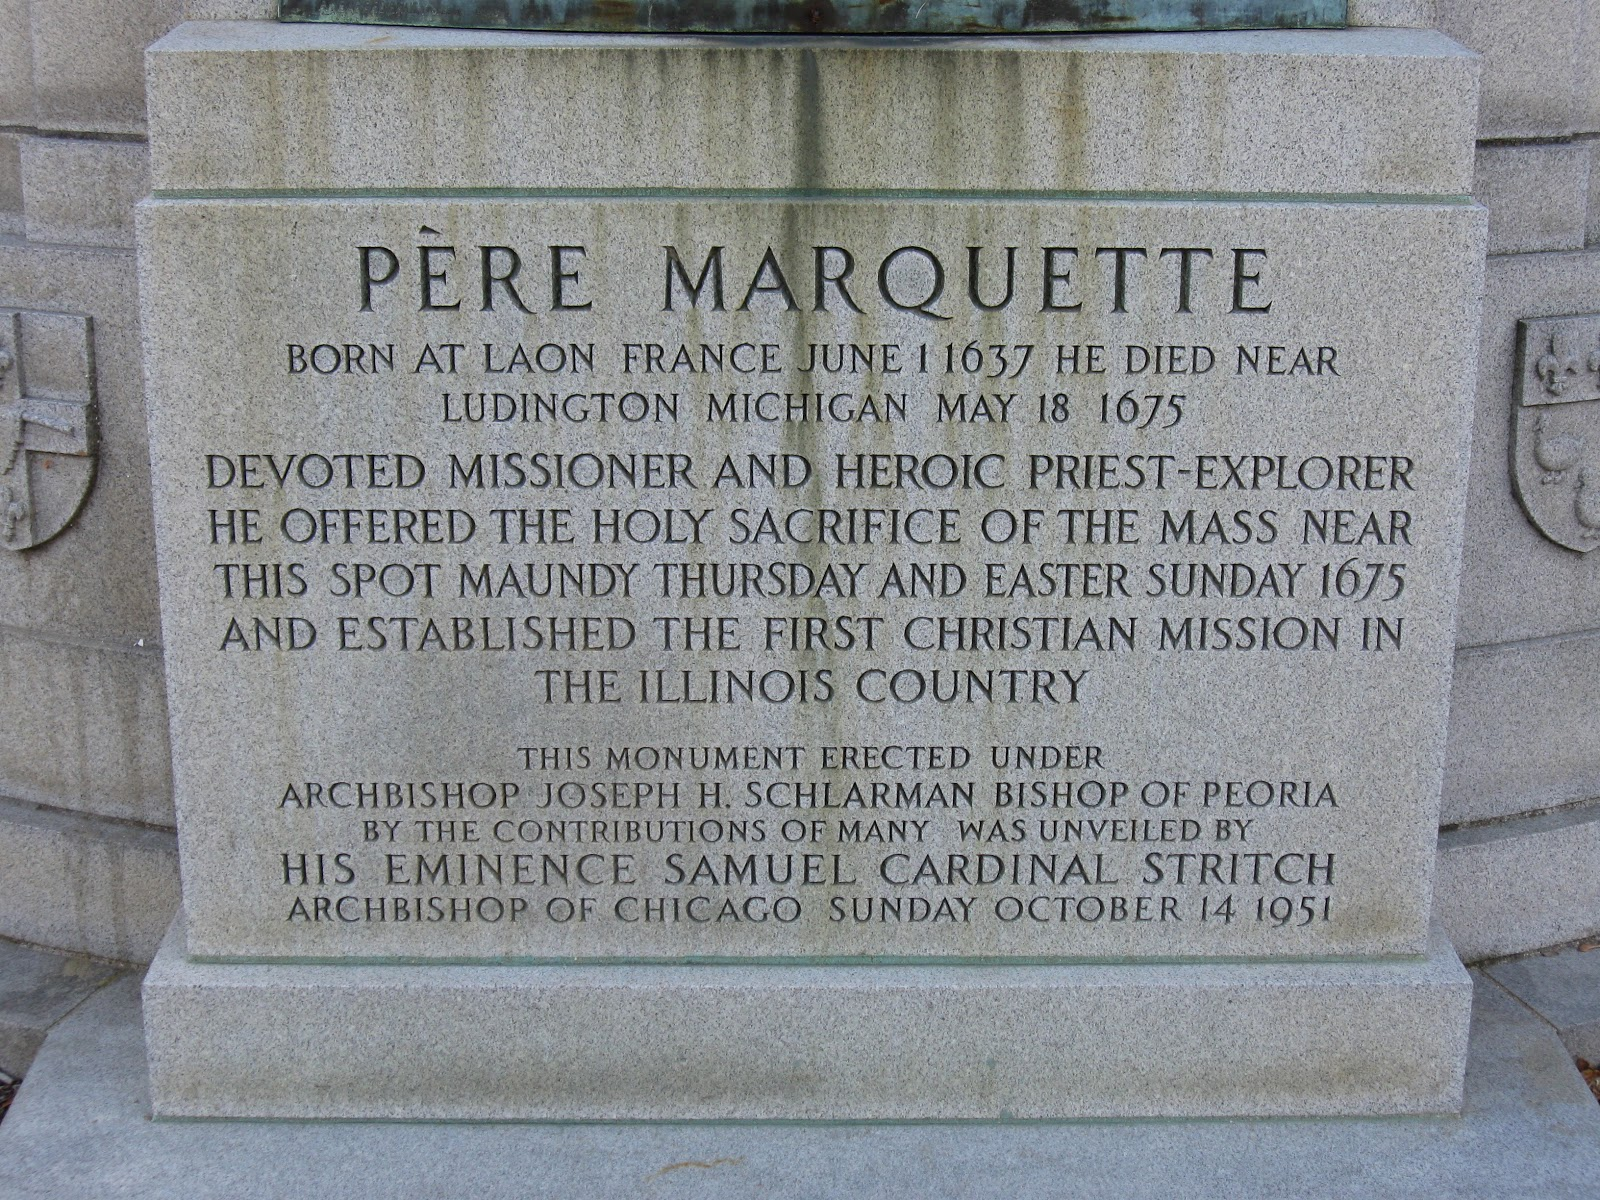 jacques marquette Jacques marquette was born in laon, france he became a jesuit priest, and, at his own request, was sent to new france in 1666 where he studied native american languages under a missionary at trois rivières.